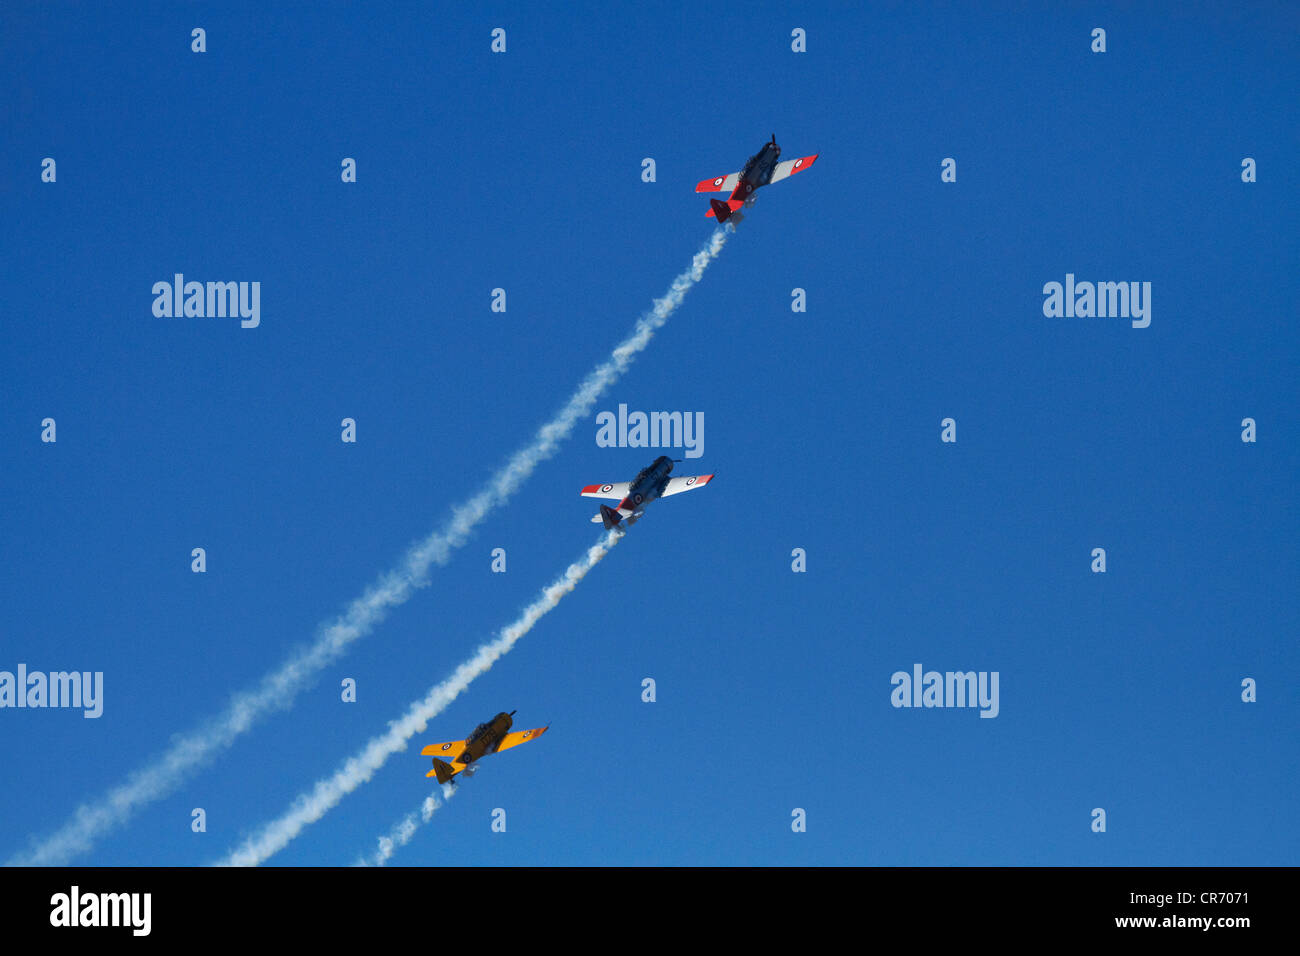 Aerobatic display by North American Harvards, or T-6 Texans, or SNJs - Stock Image